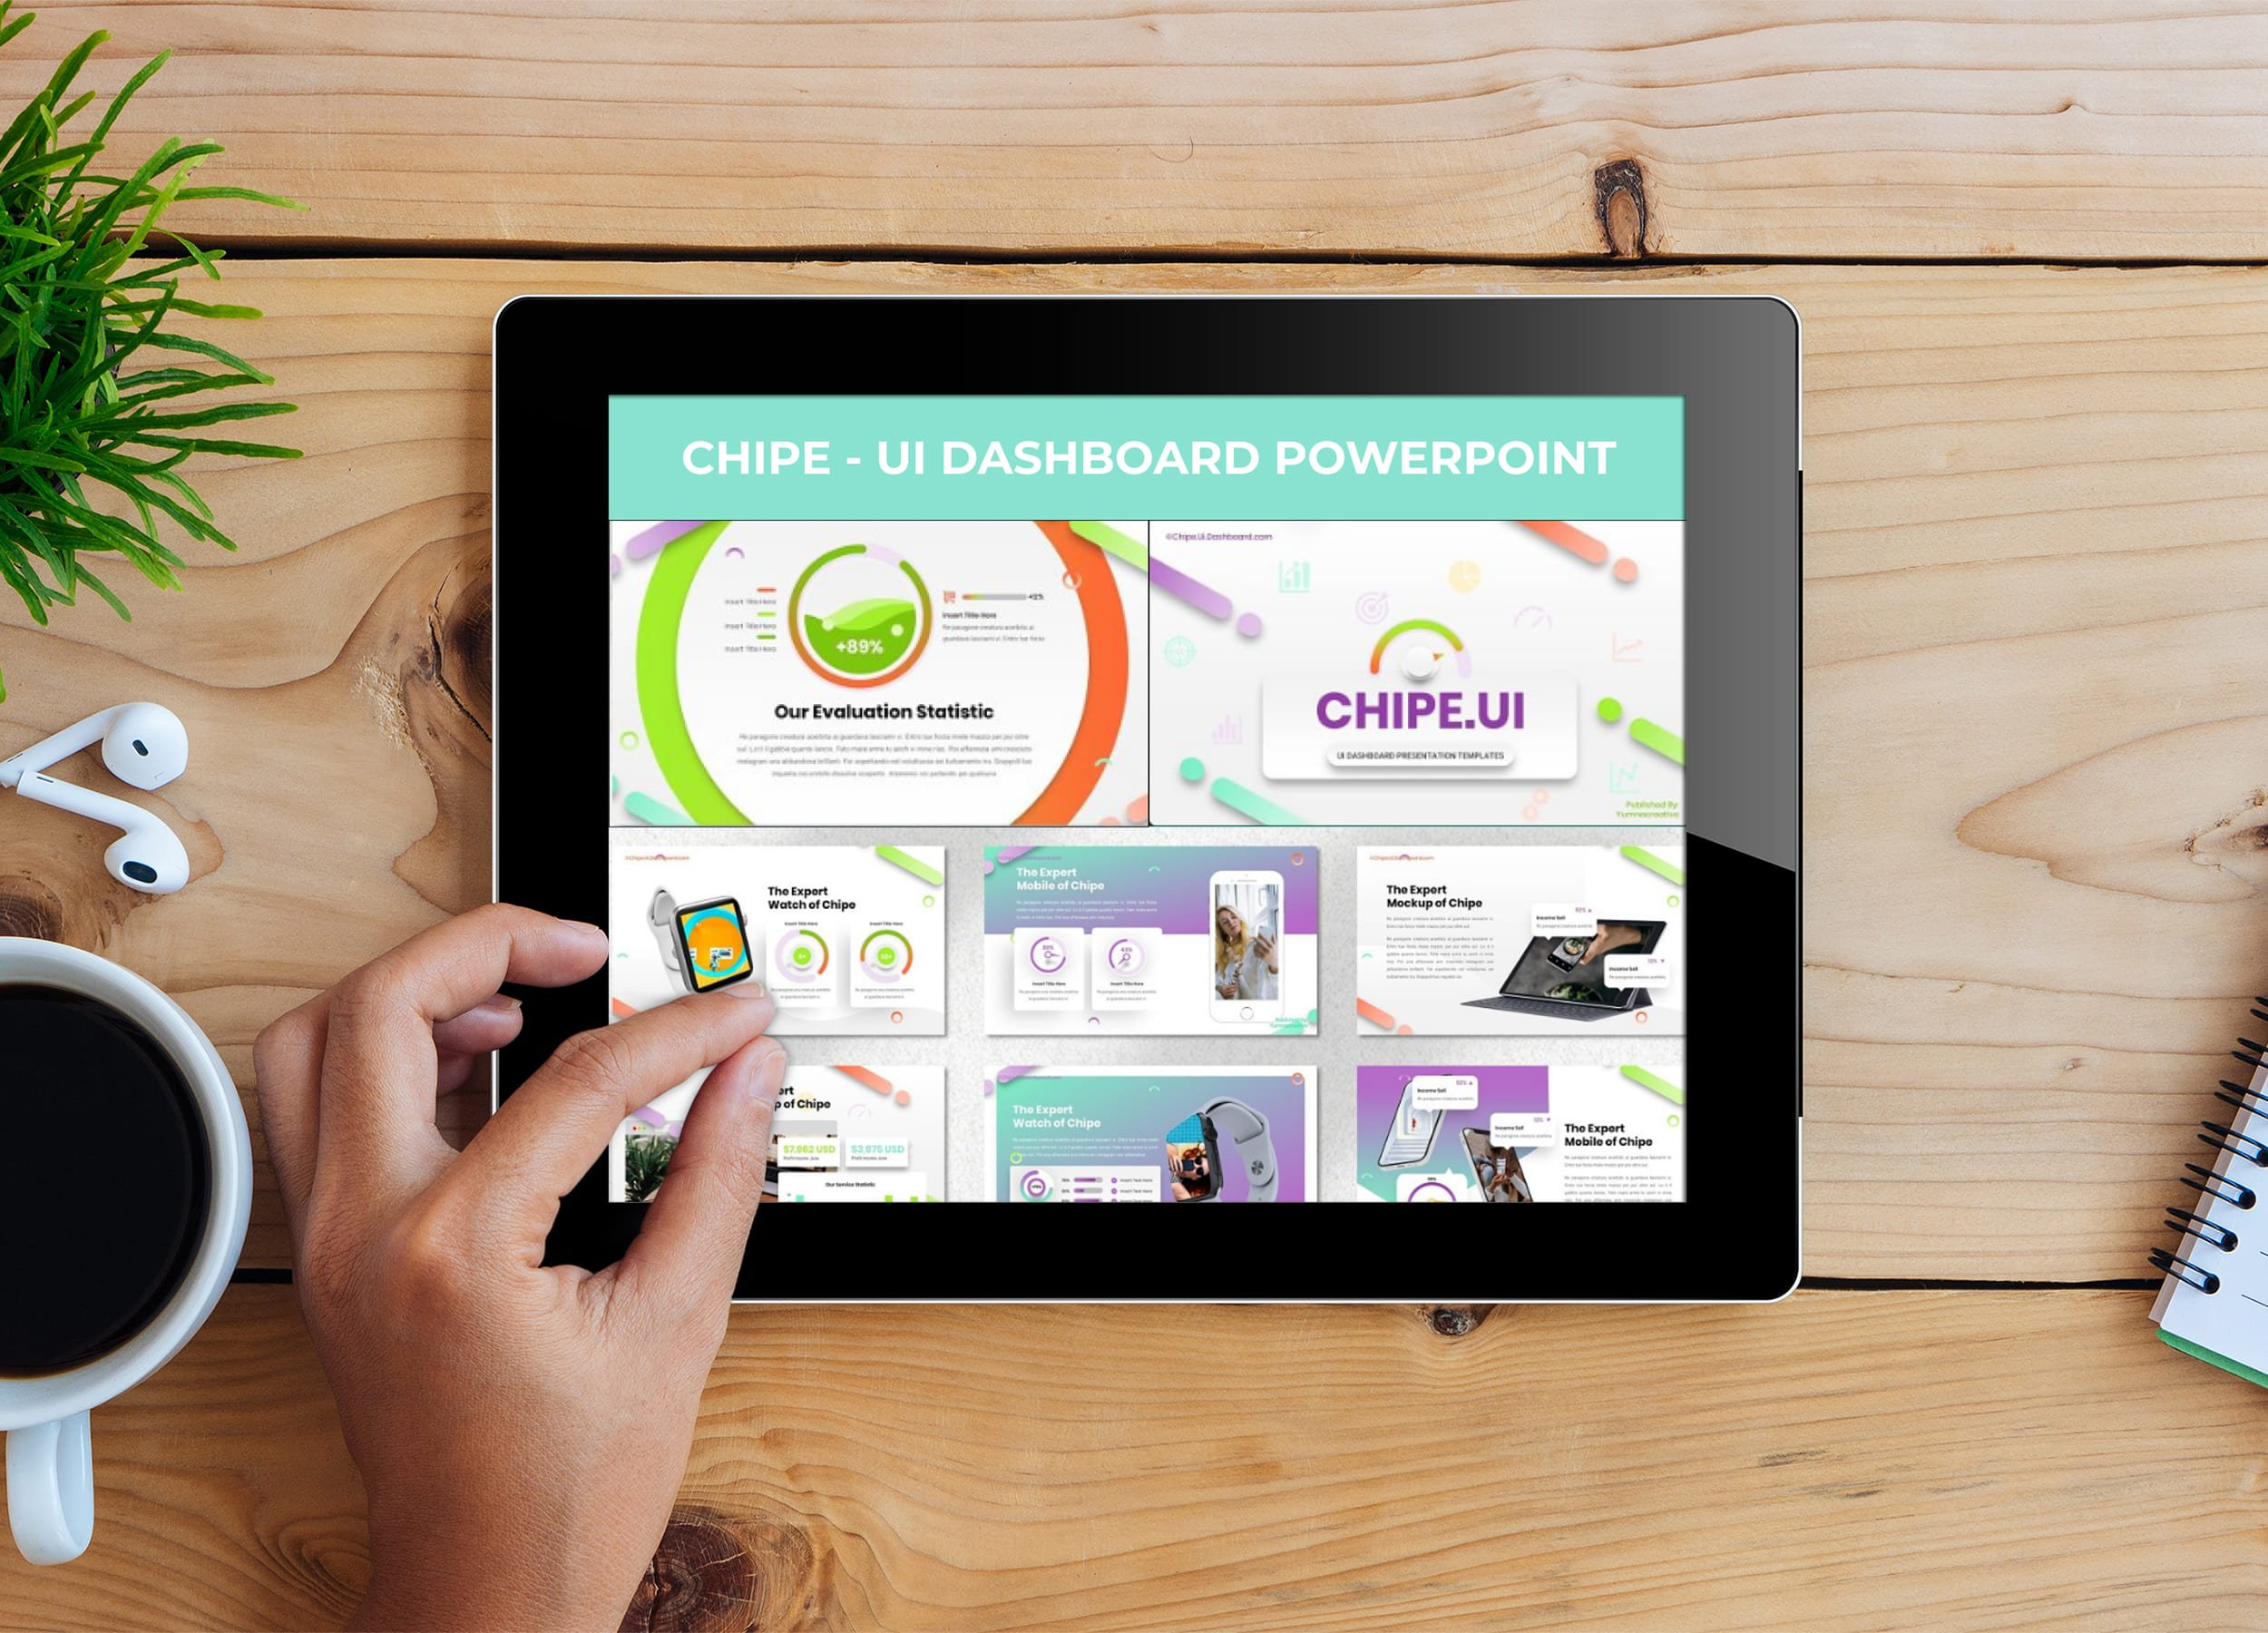 Tablet option of the Chipe - UI Dashboard Powerpoint.